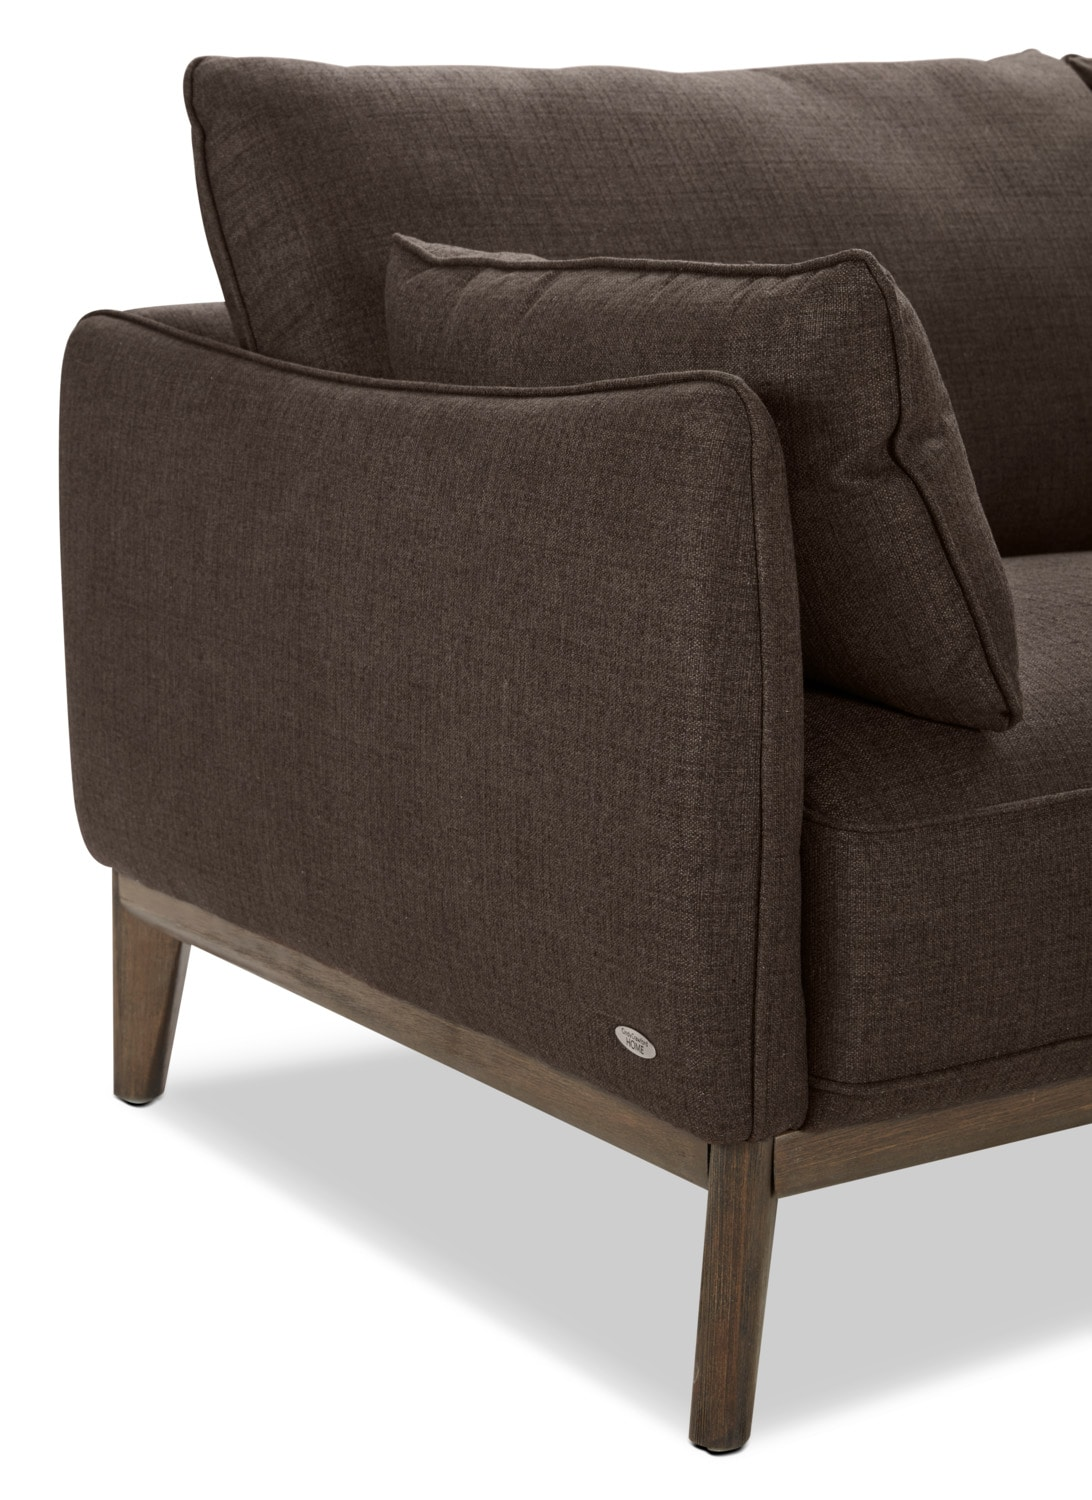 Gena 2 Piece Linen Look Fabric Right Facing Sectional